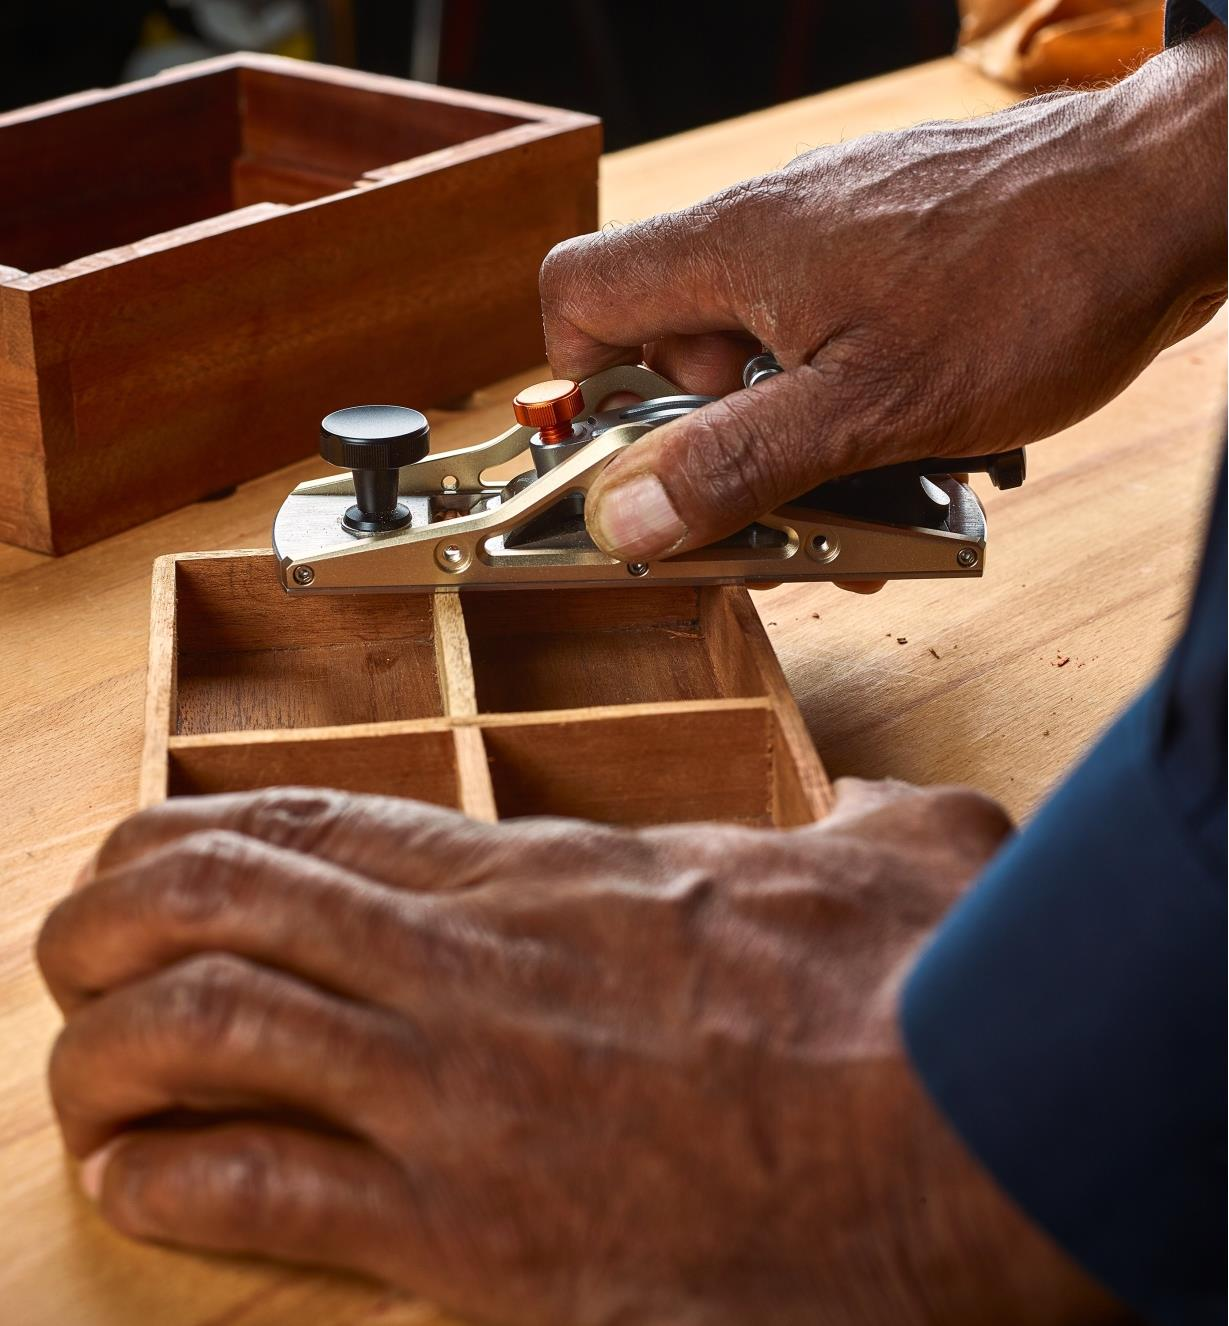 A woodworker uses a dual-angle block plane to level the walls of a wooden box